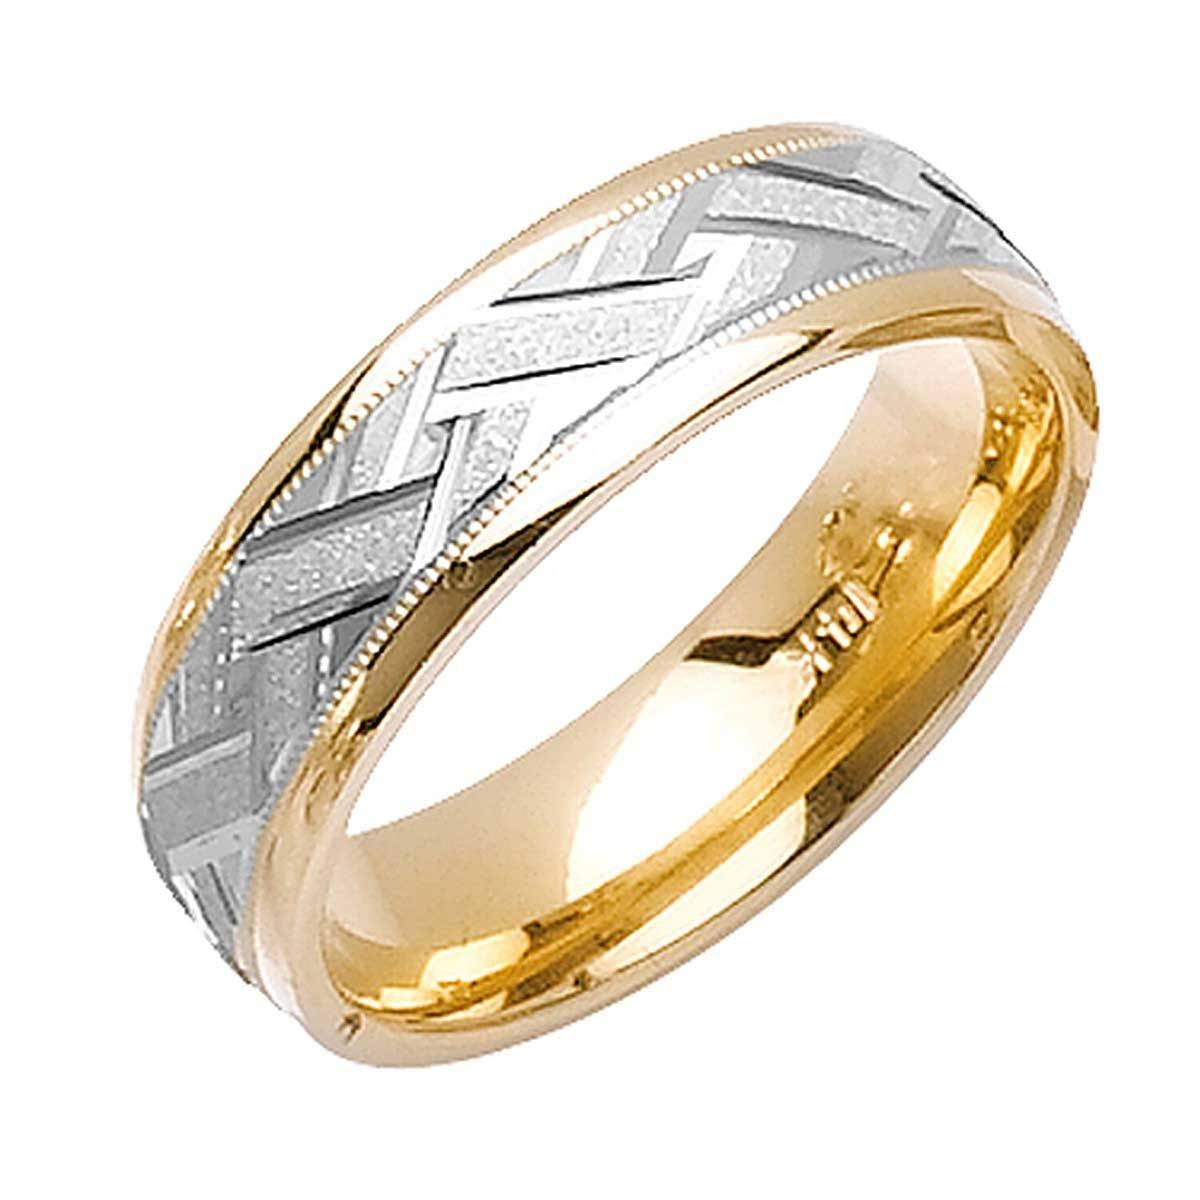 18K Two Tone Gold Wicker Braid Band 6Mm  3001930 – Shop At Wedding With Mens Braided Wedding Bands (View 6 of 15)